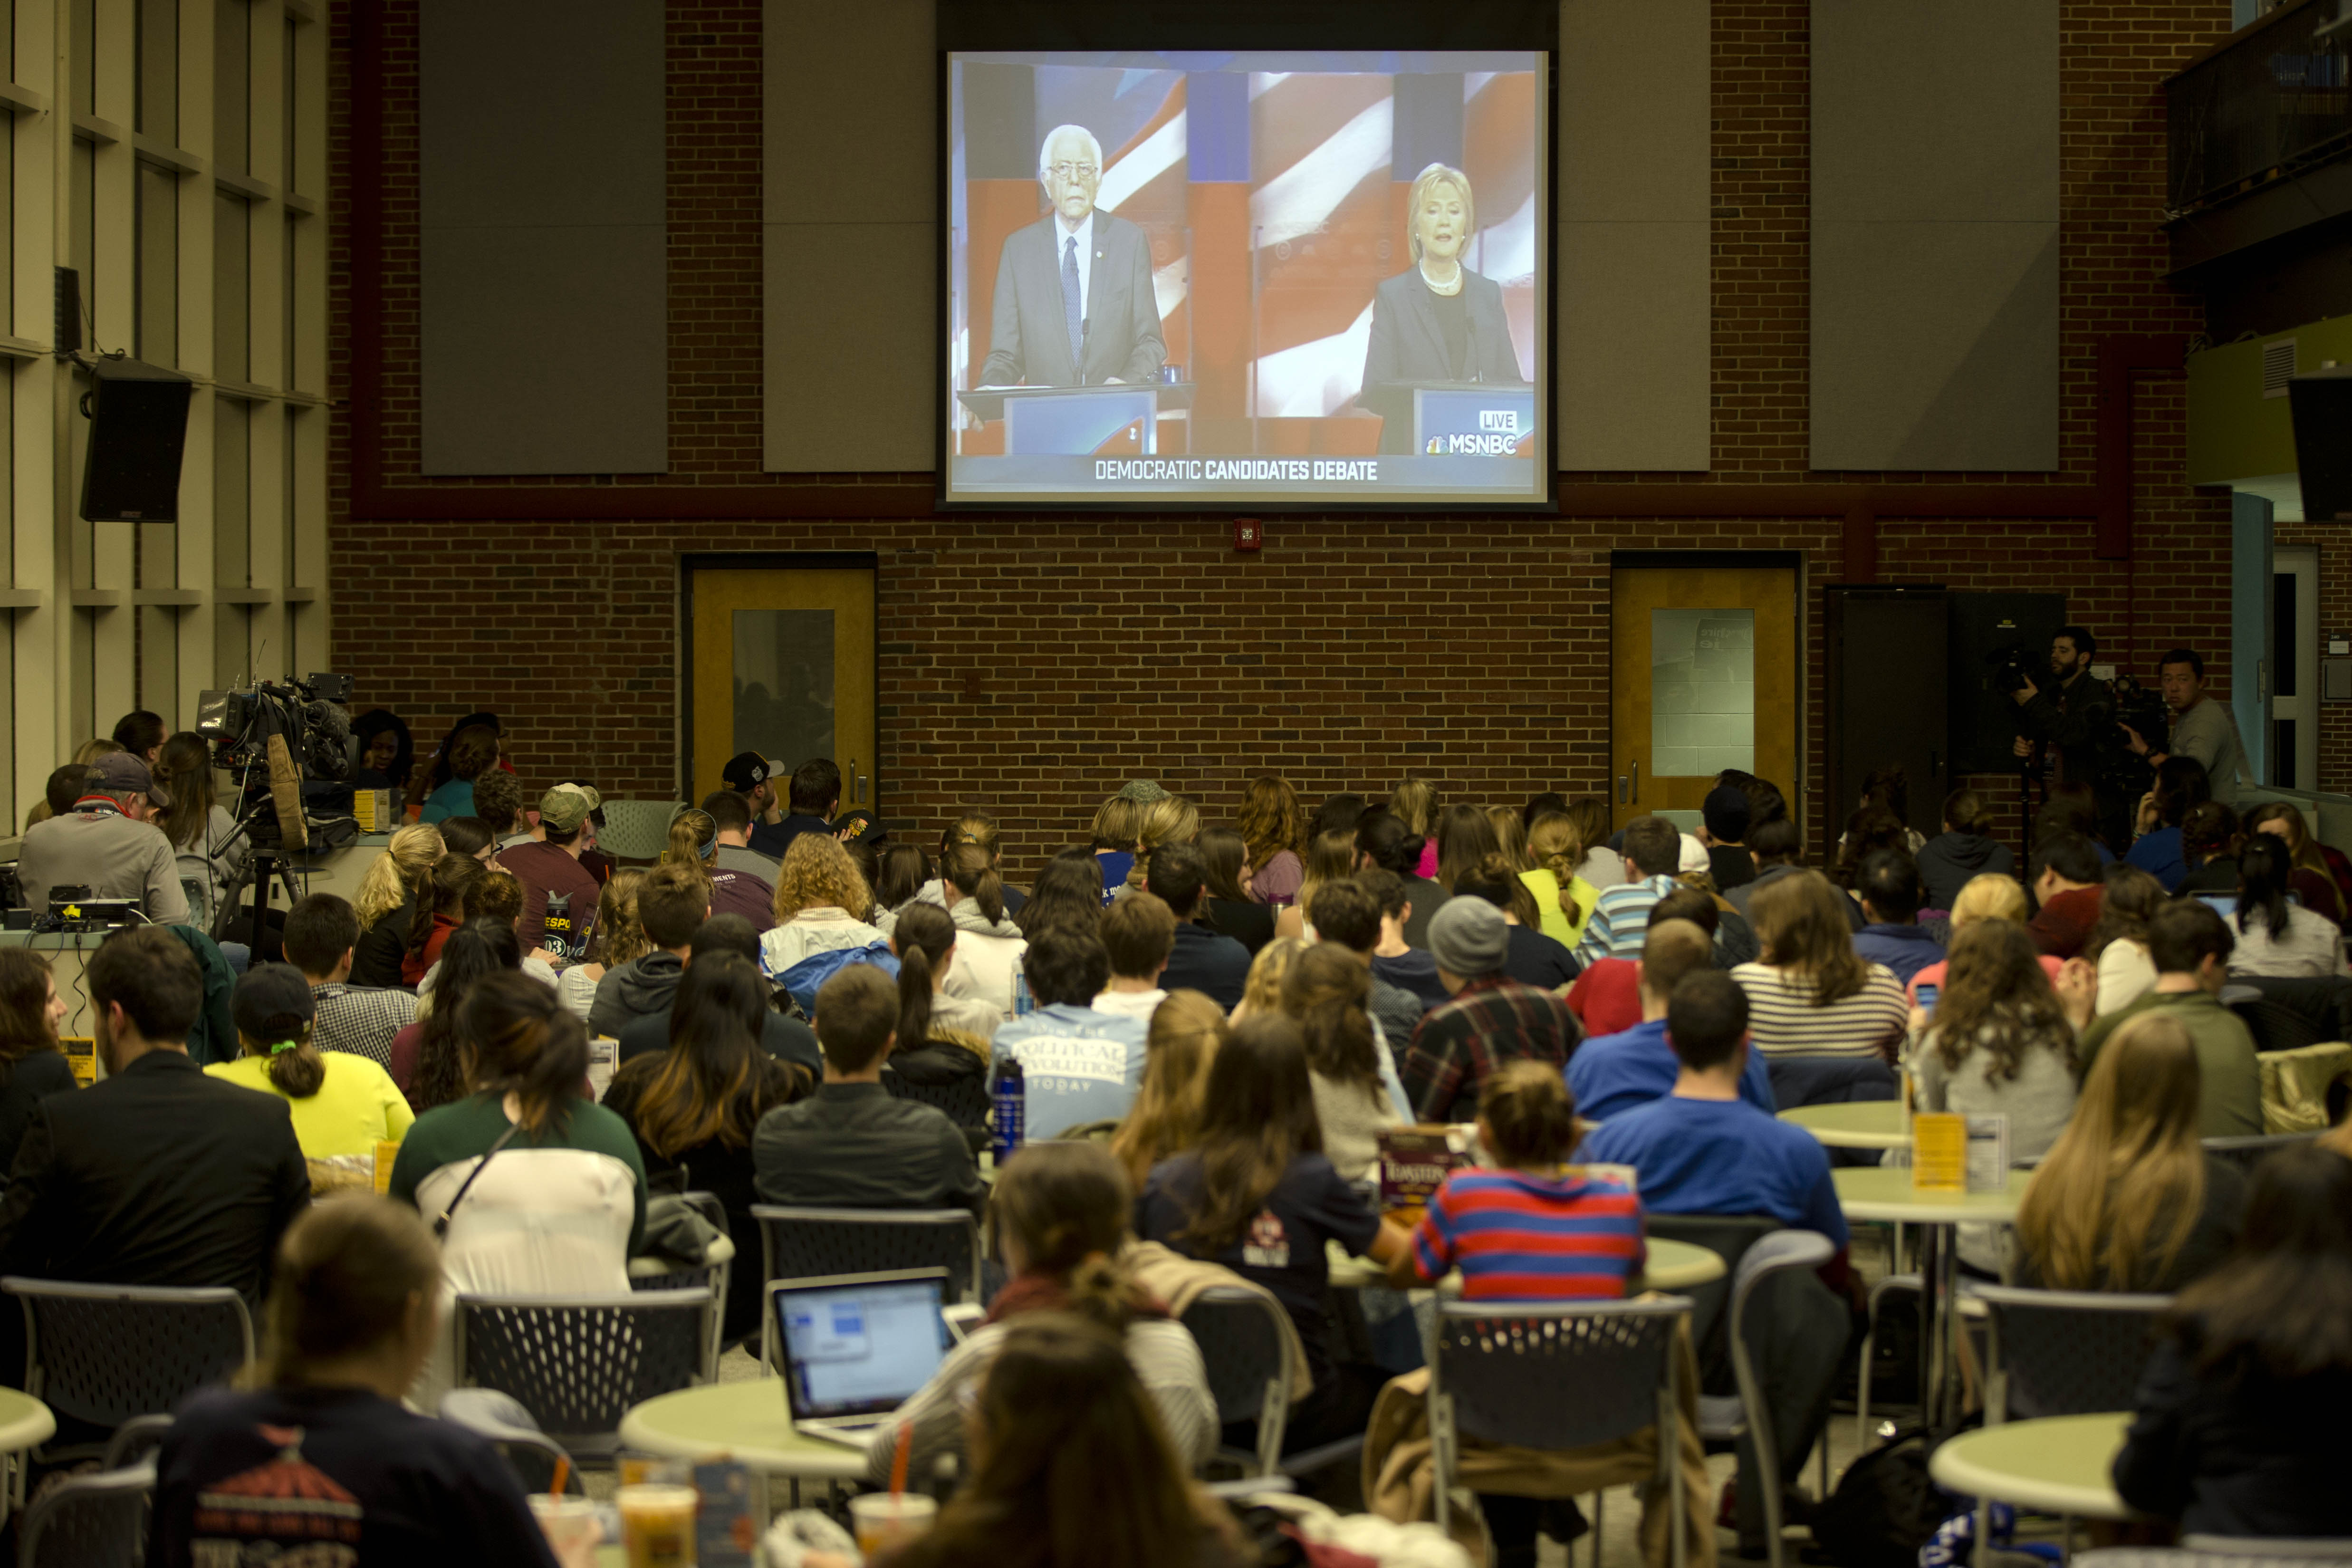 Students view on a video screen the Democratic presidential debate between candidates Sen. Bernie Sanders, I-Vt, Thursday, Feb. 4, 2016, at University of New Hampshire in Durham, N.H. (AP Photo/Matt Rourke)